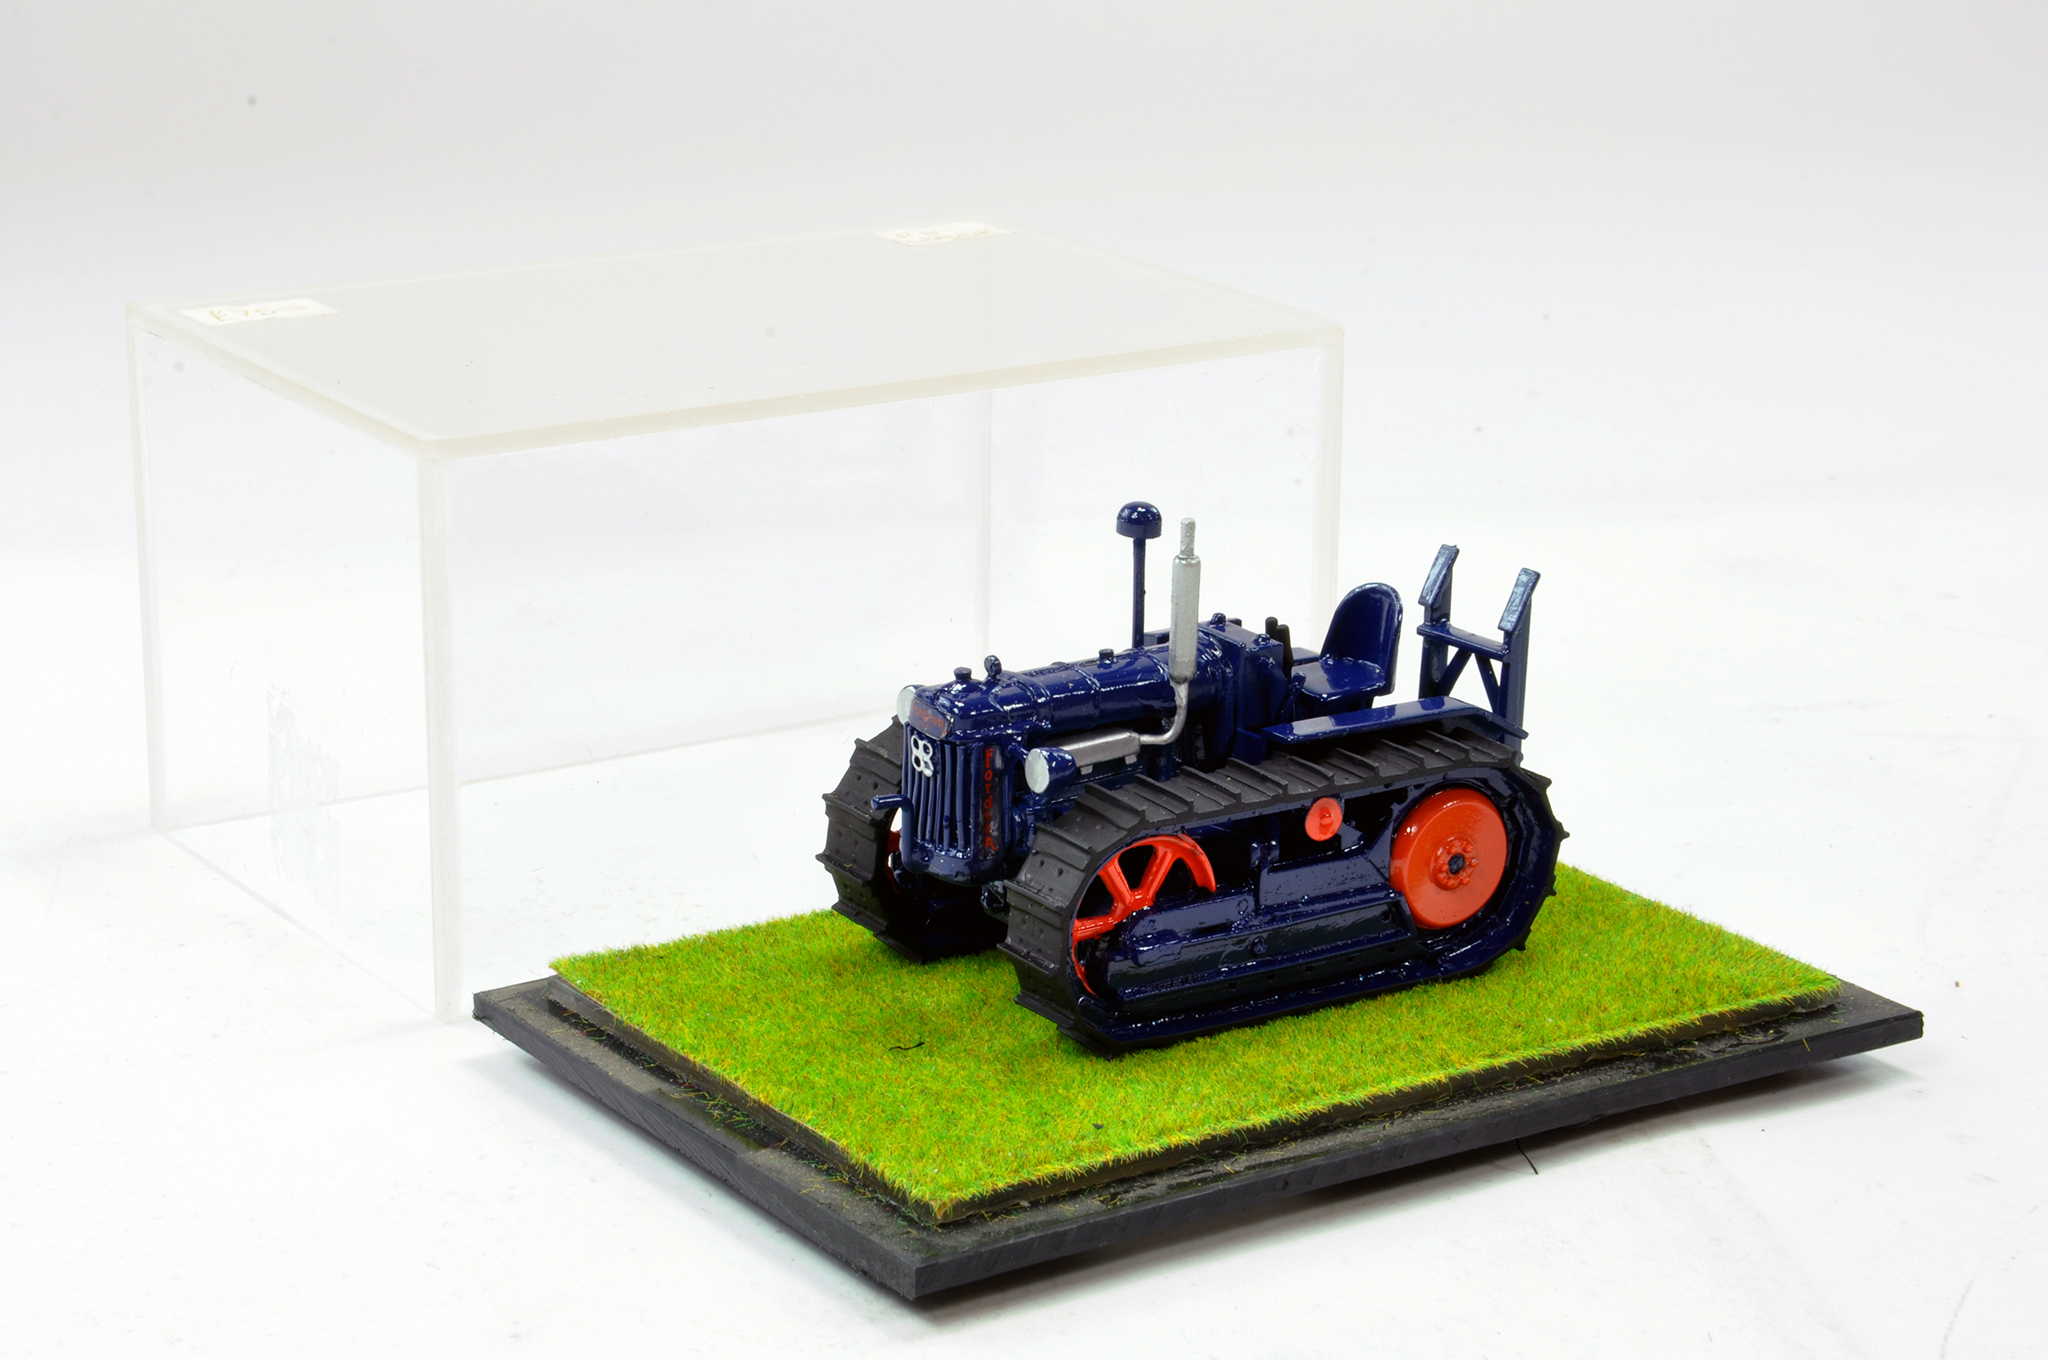 Lot 244 - Scaledown Models 1/32 Hand Built Fordson Major E27N Crawler Tractor. Superb model is generally